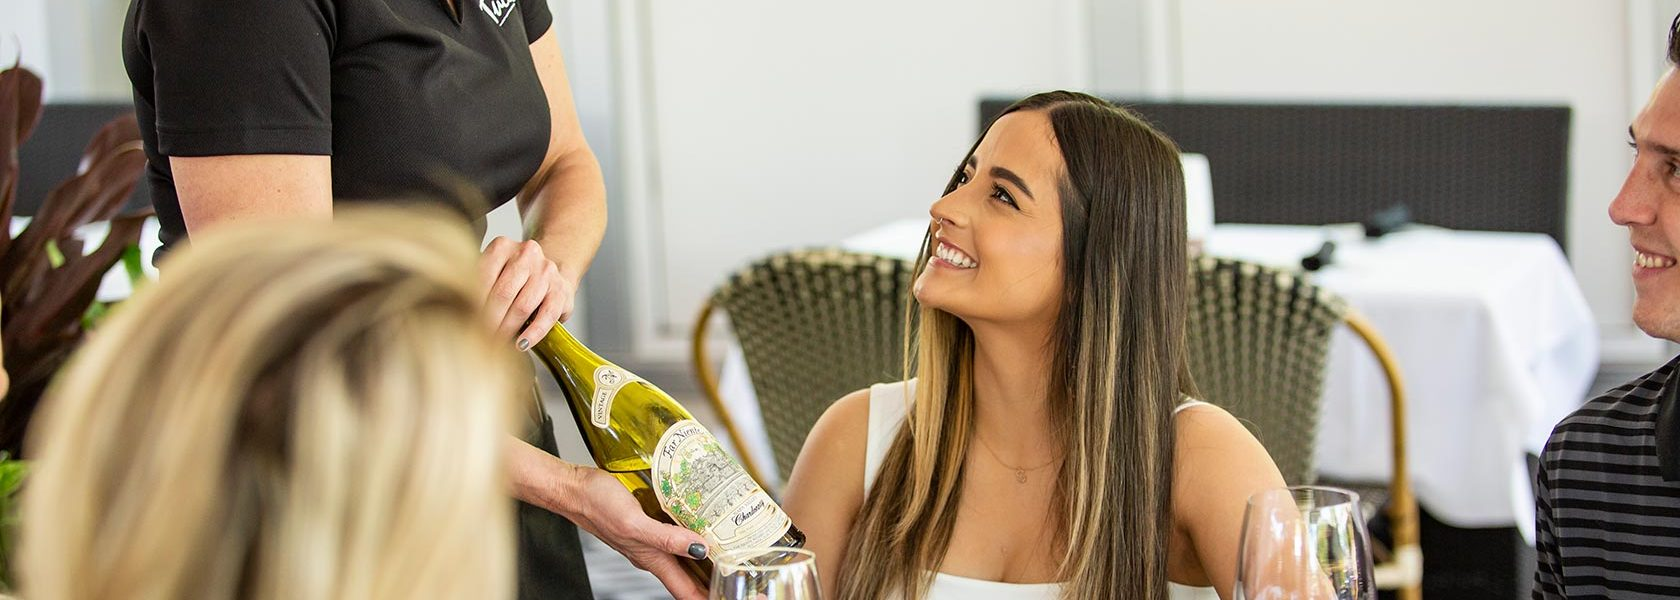 Woman smiling at server presenting bottle of wine